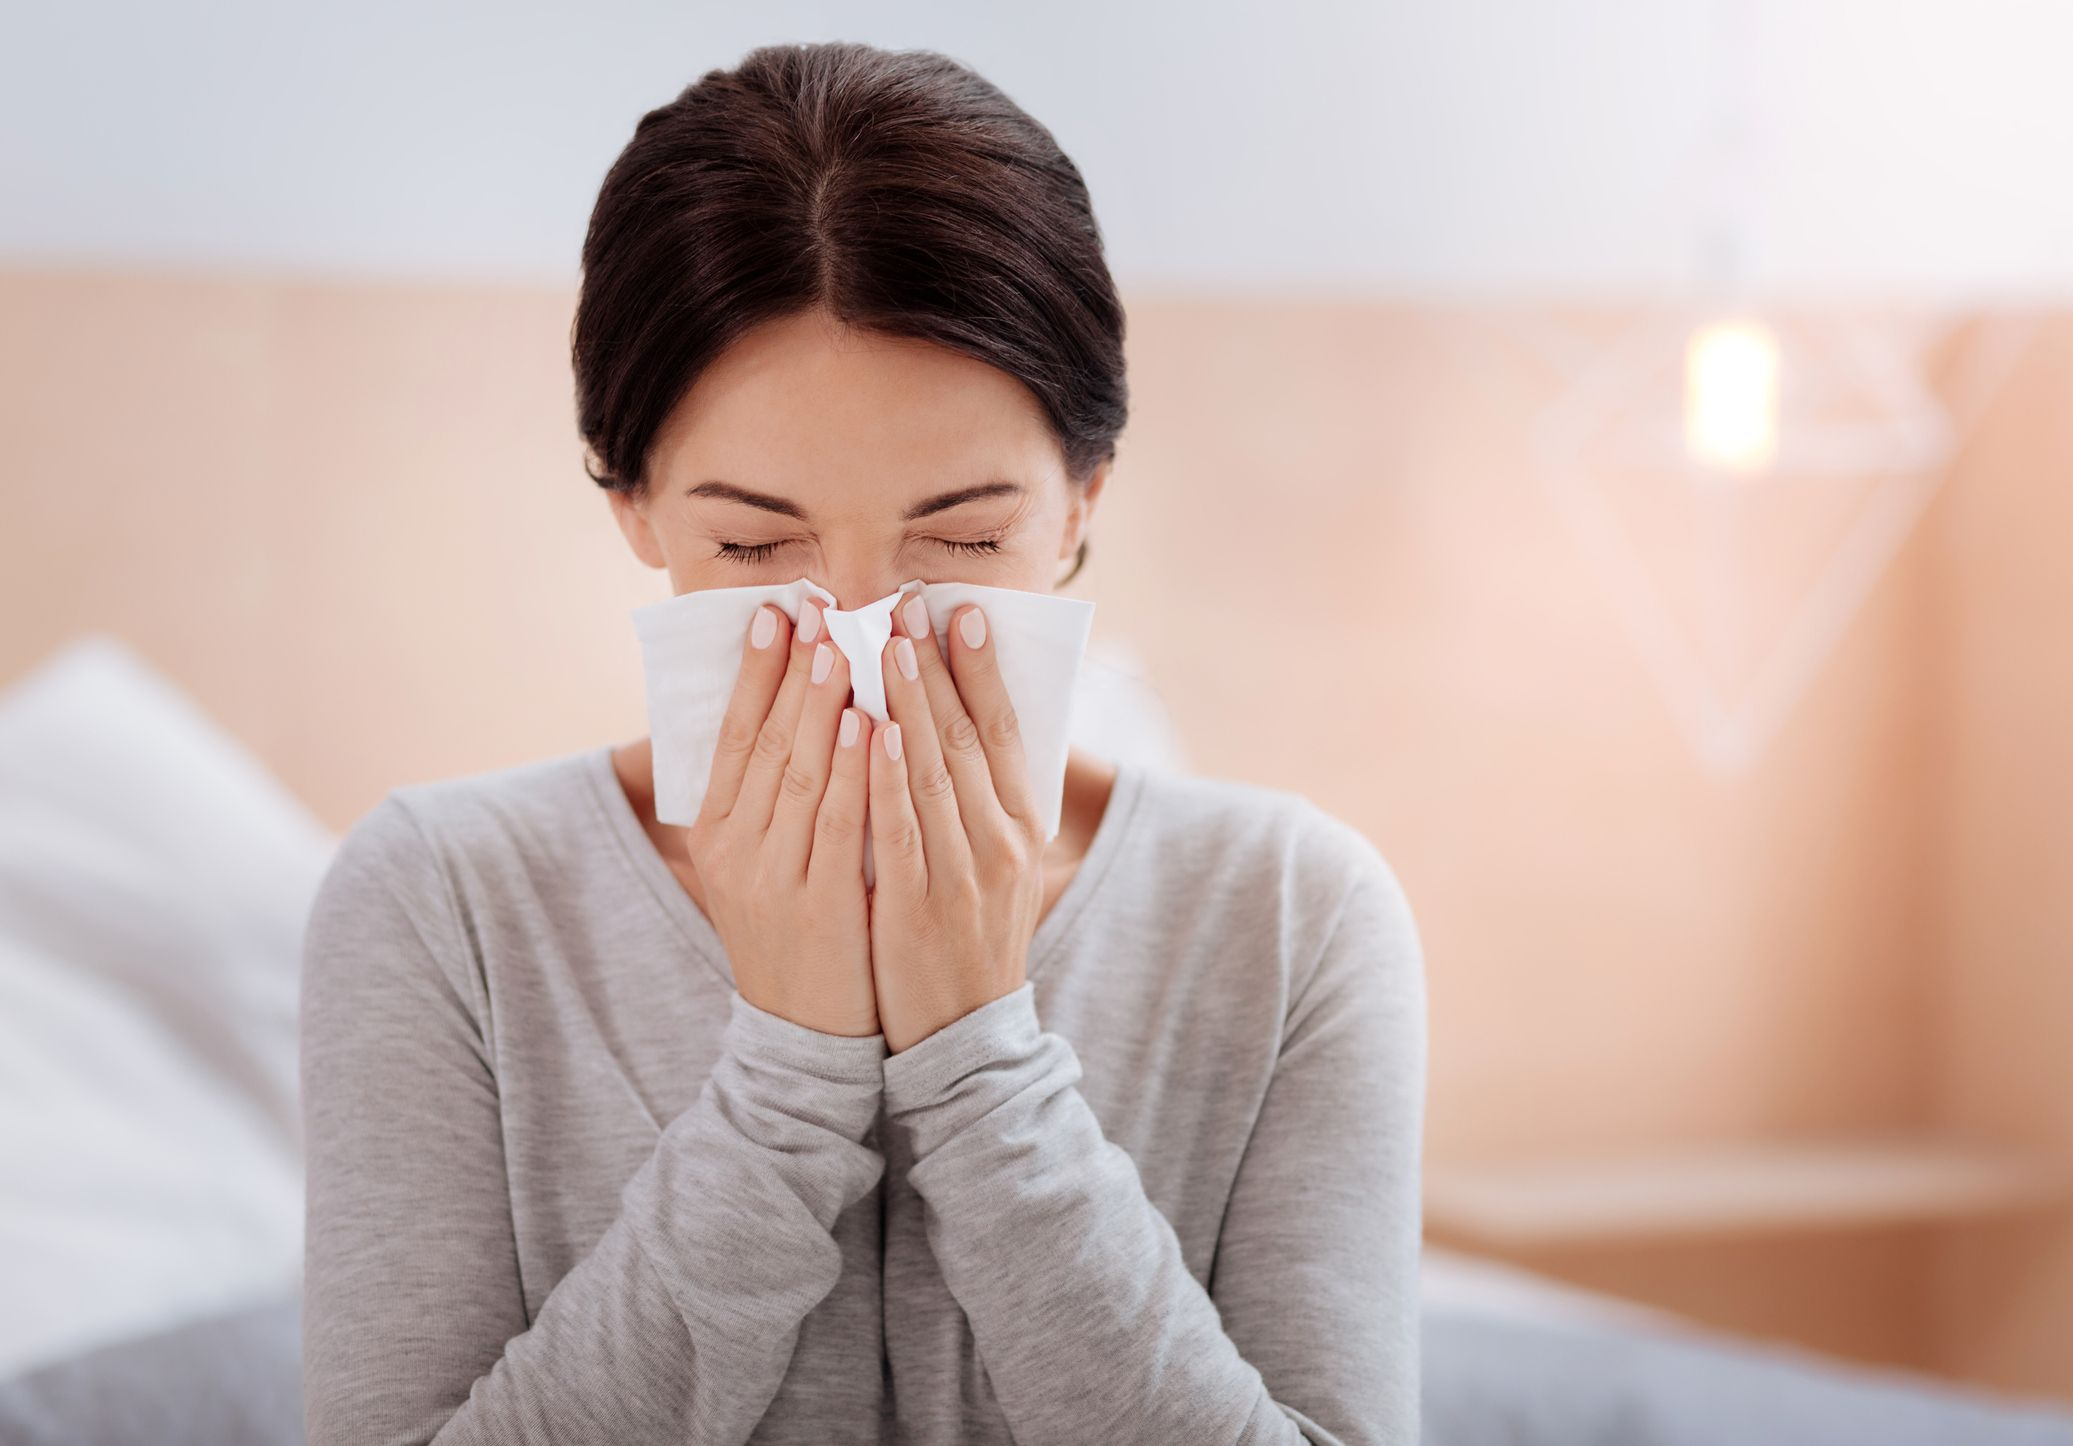 Should You Get a Flu Shot When You're Sick? This Is What Doctors Recommend